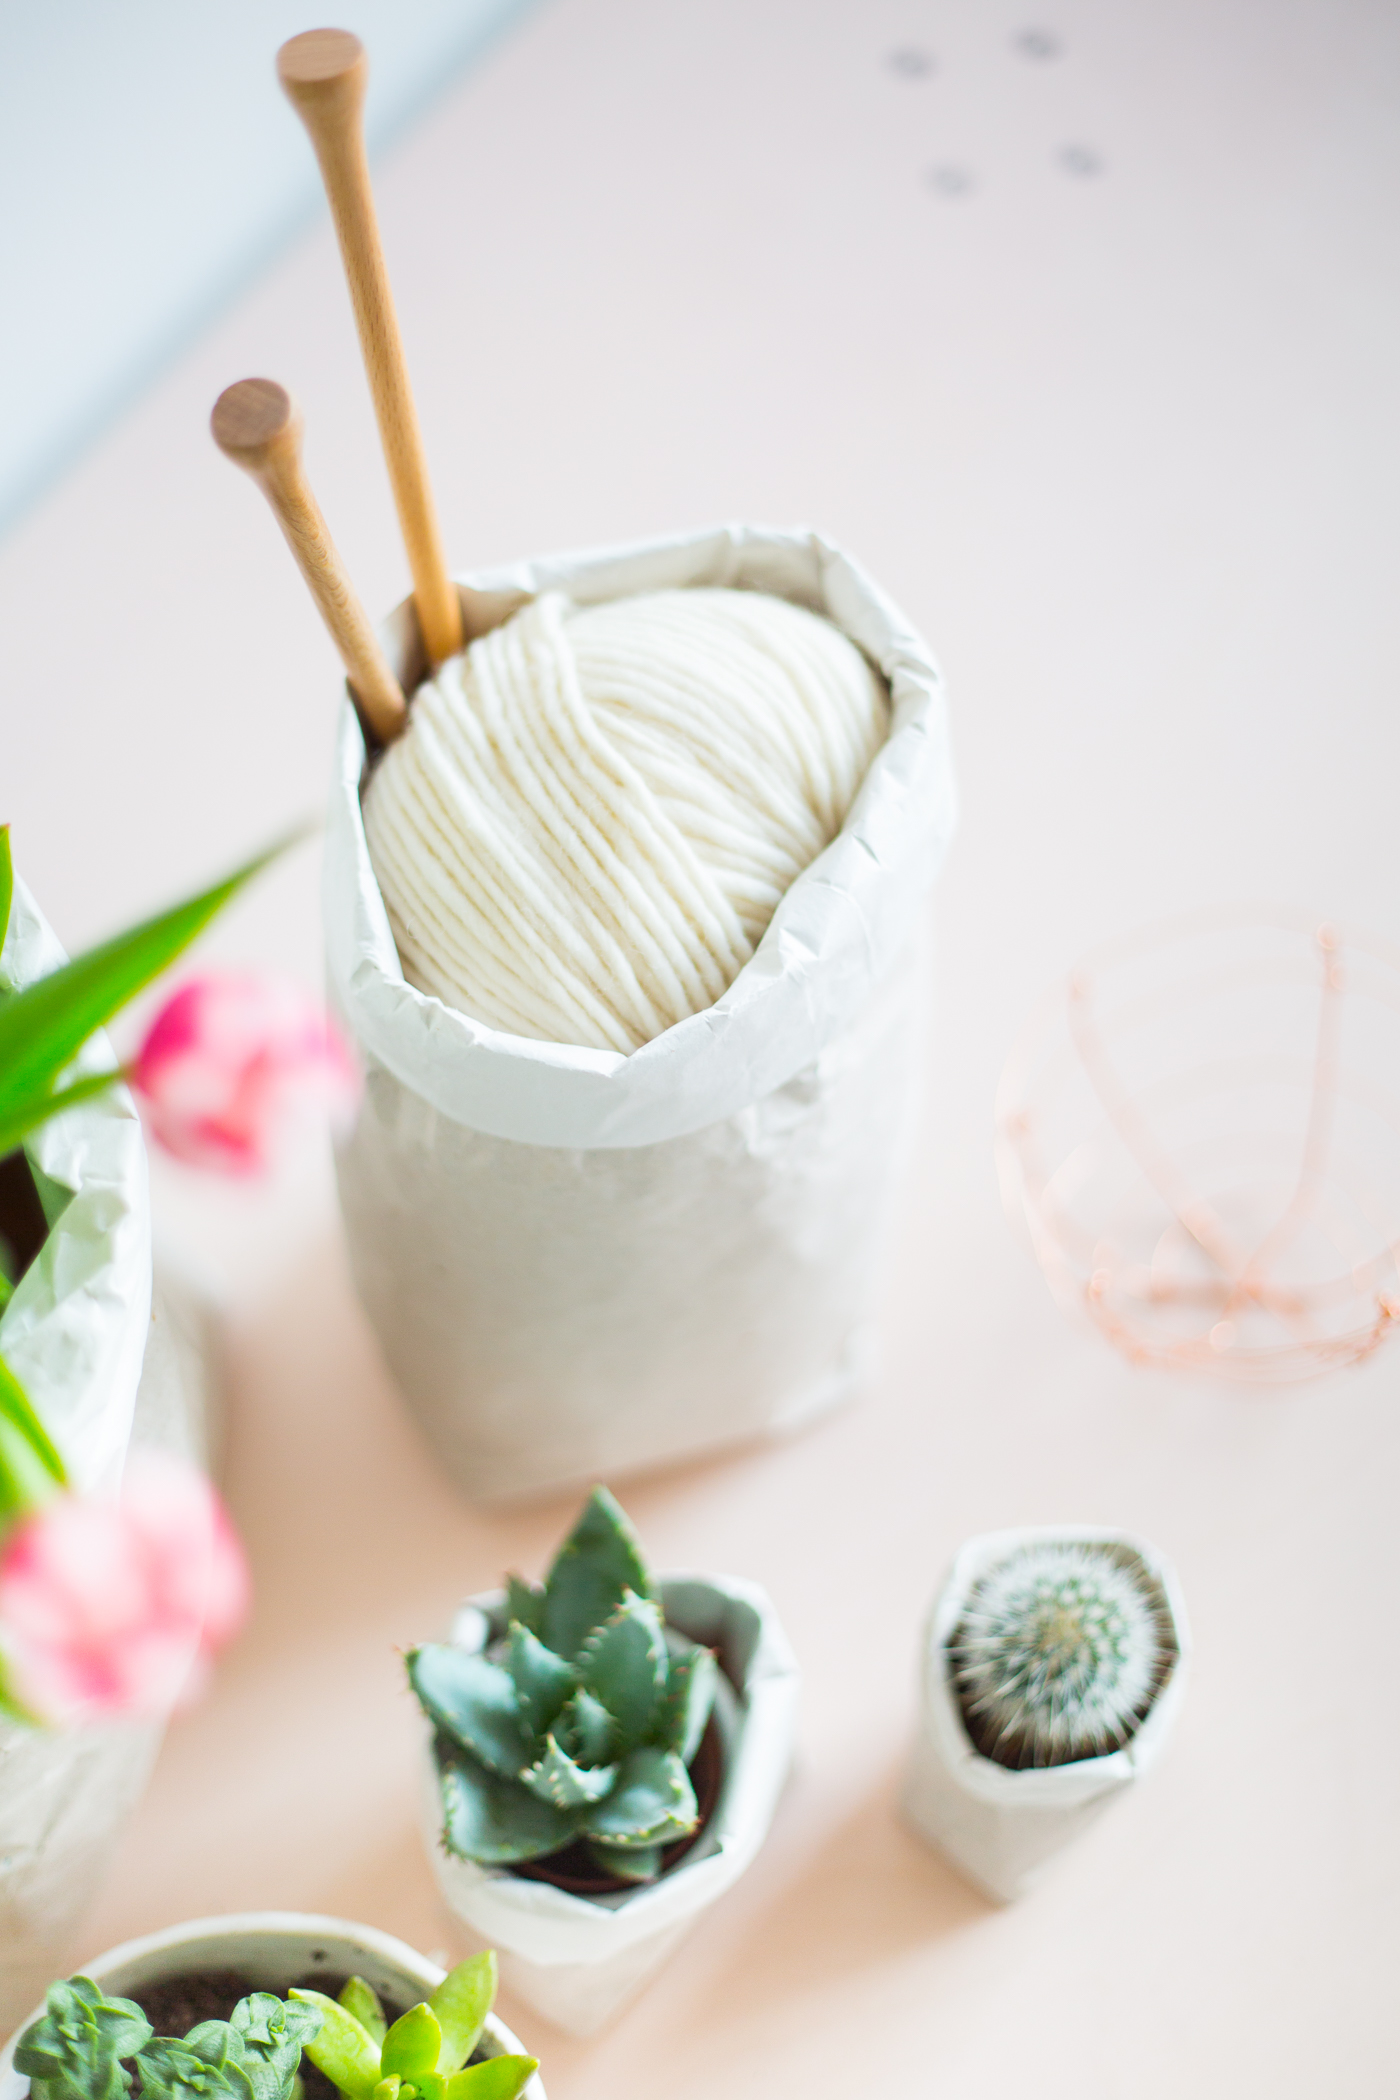 DIY Packing Paper Sack Planters | @fallfordiy